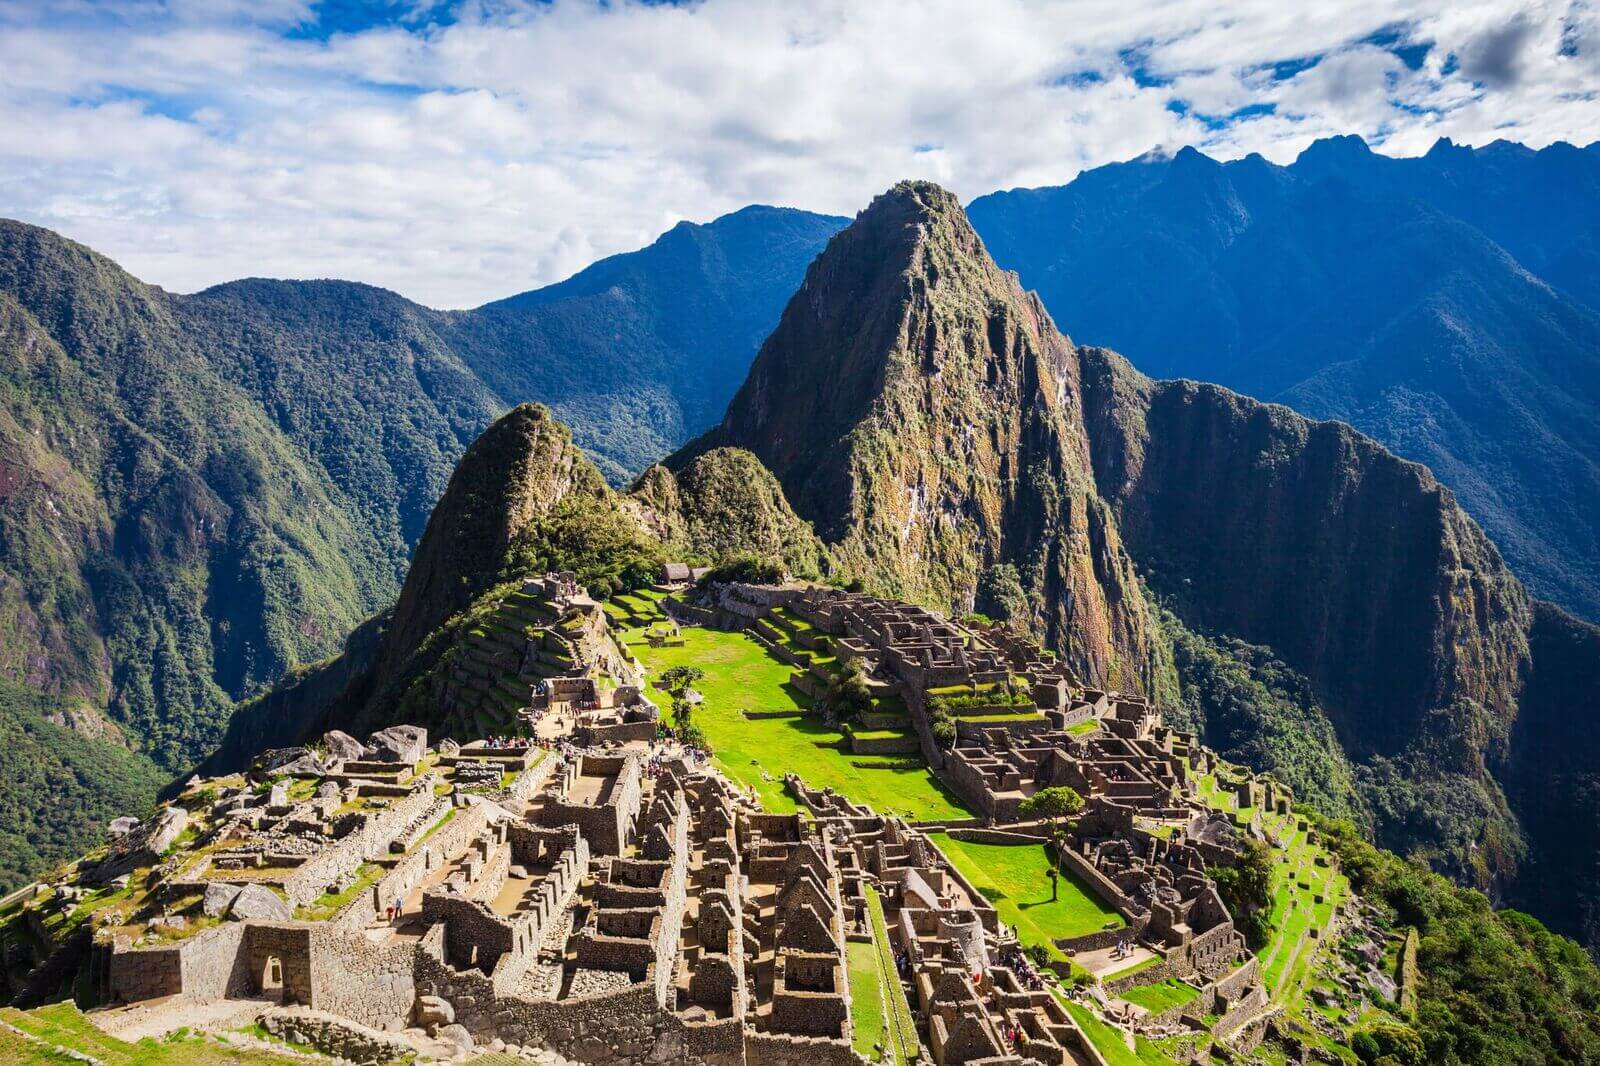 Modern 7 wonders of the world -  Voyage To One Of The Seven Wonders Of The Modern World